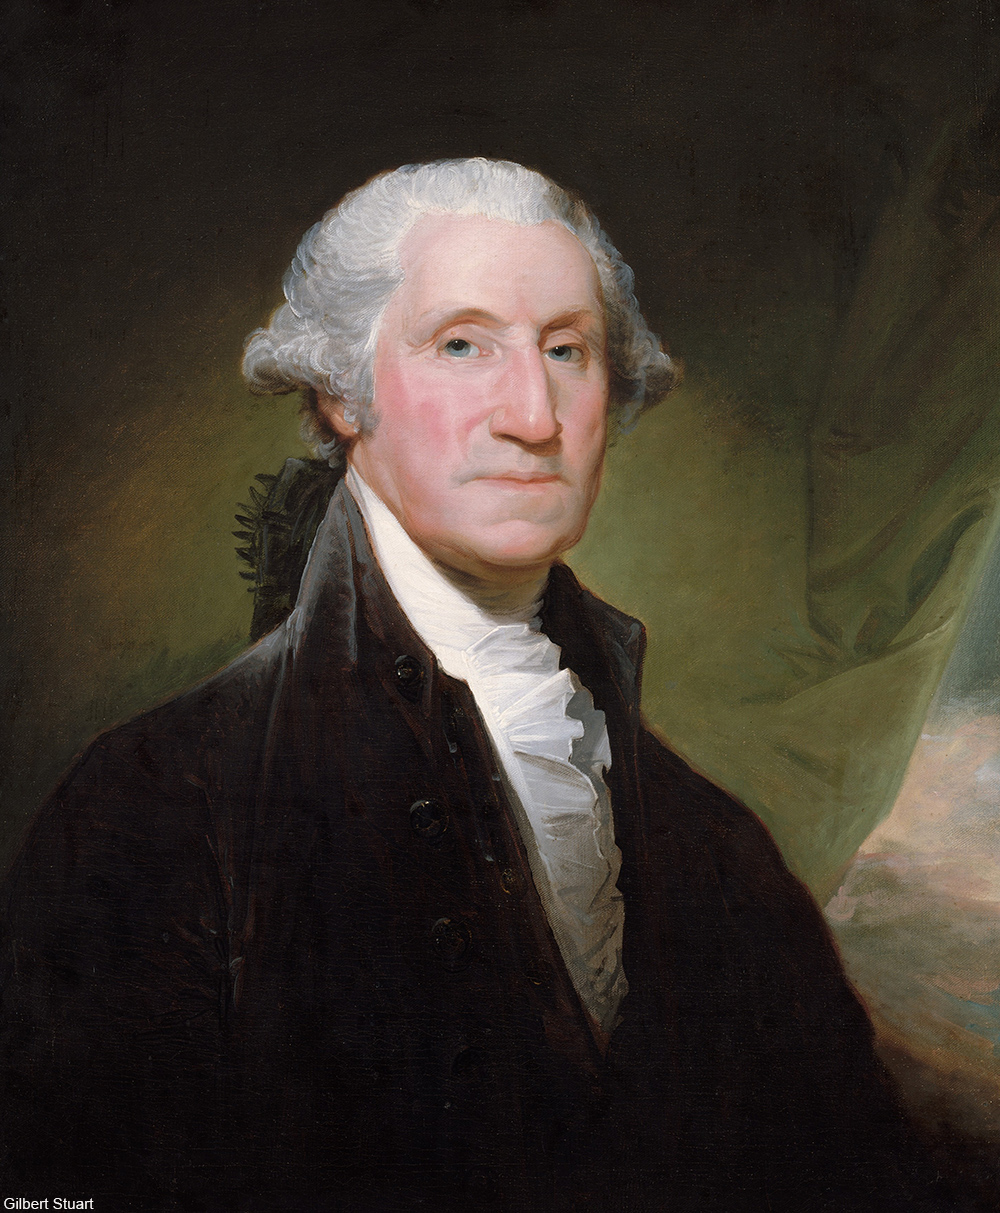 1795 painting of George Washington by Gilbert Stuart